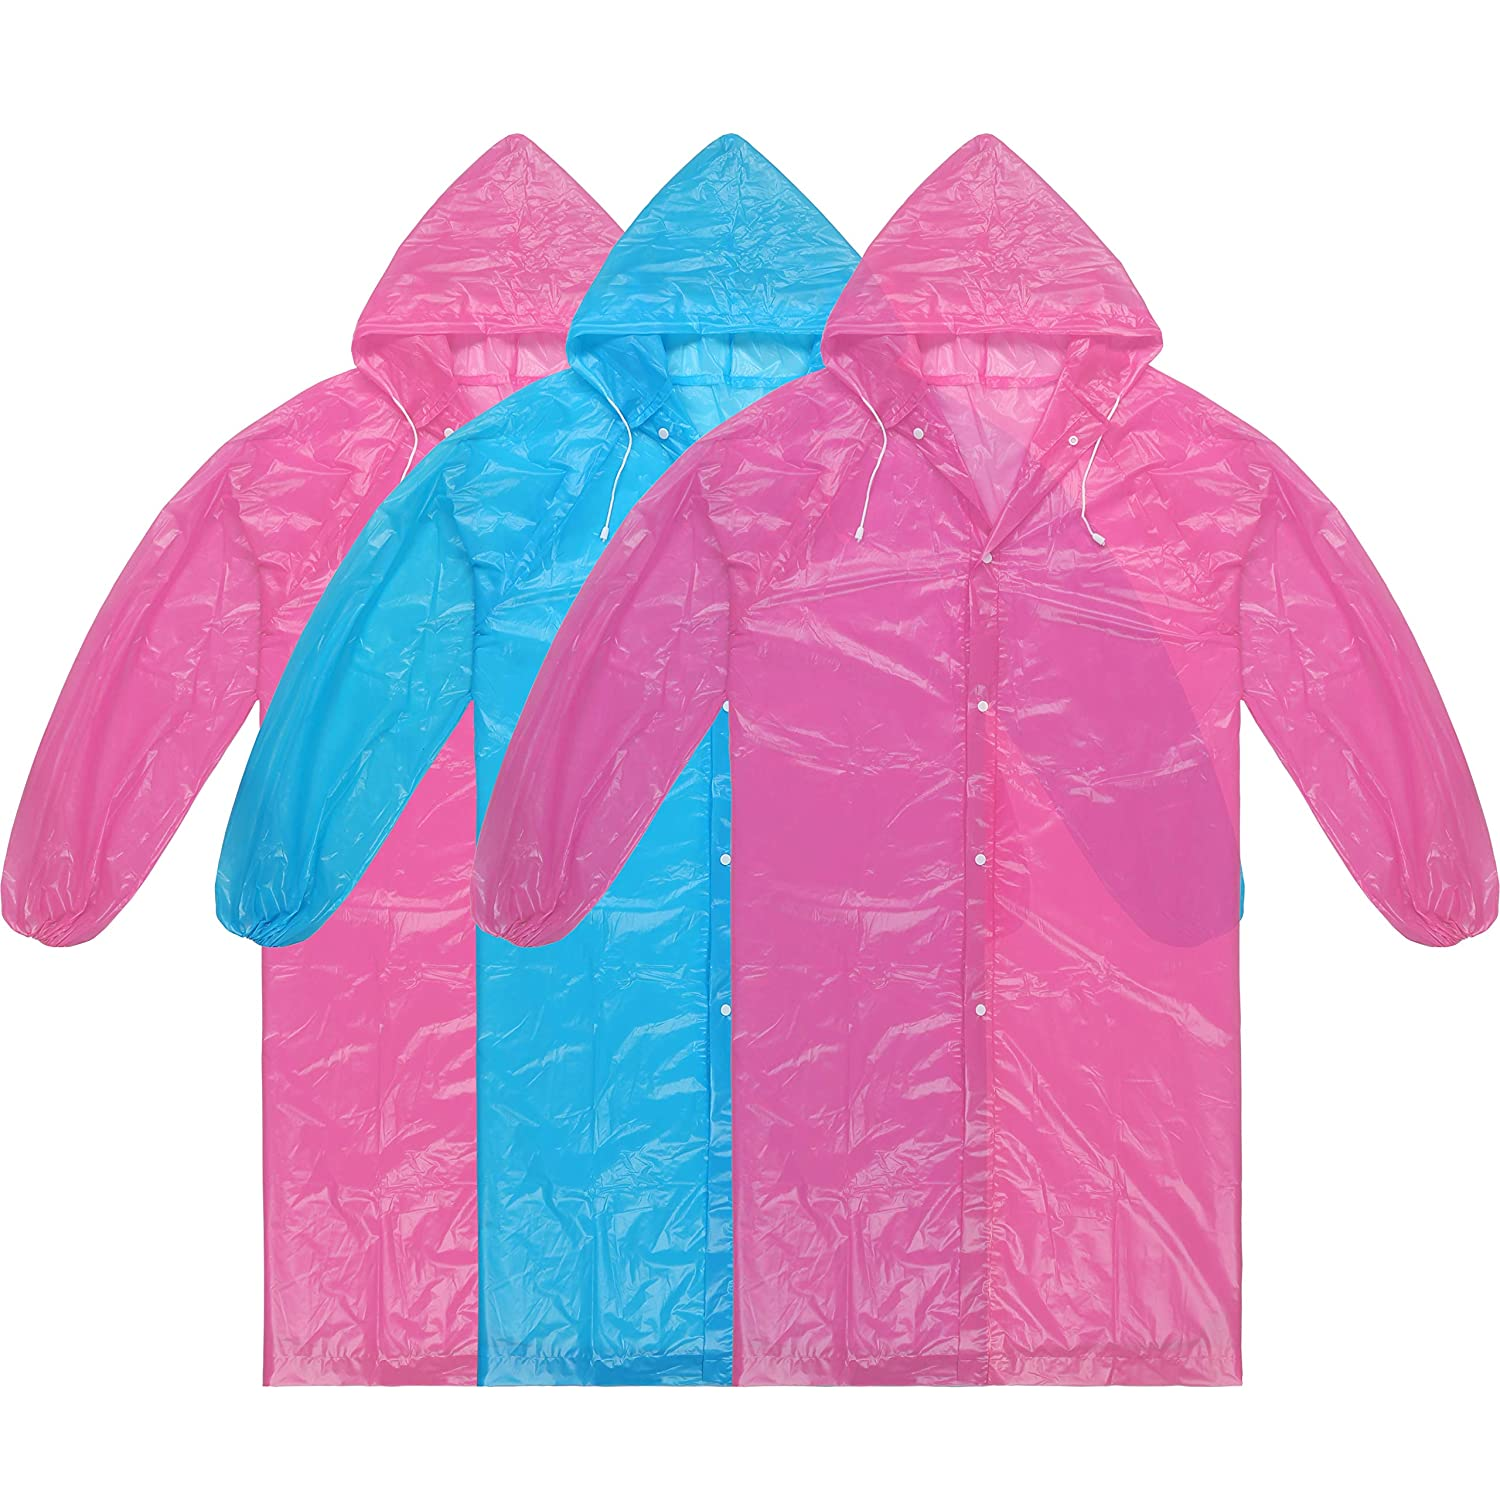 Dsteng Rain Poncho Adult Ponchos Reusable Raincoat 3 Pack No Plastic SmellLight Weight and Perfect for Outdoor Activities